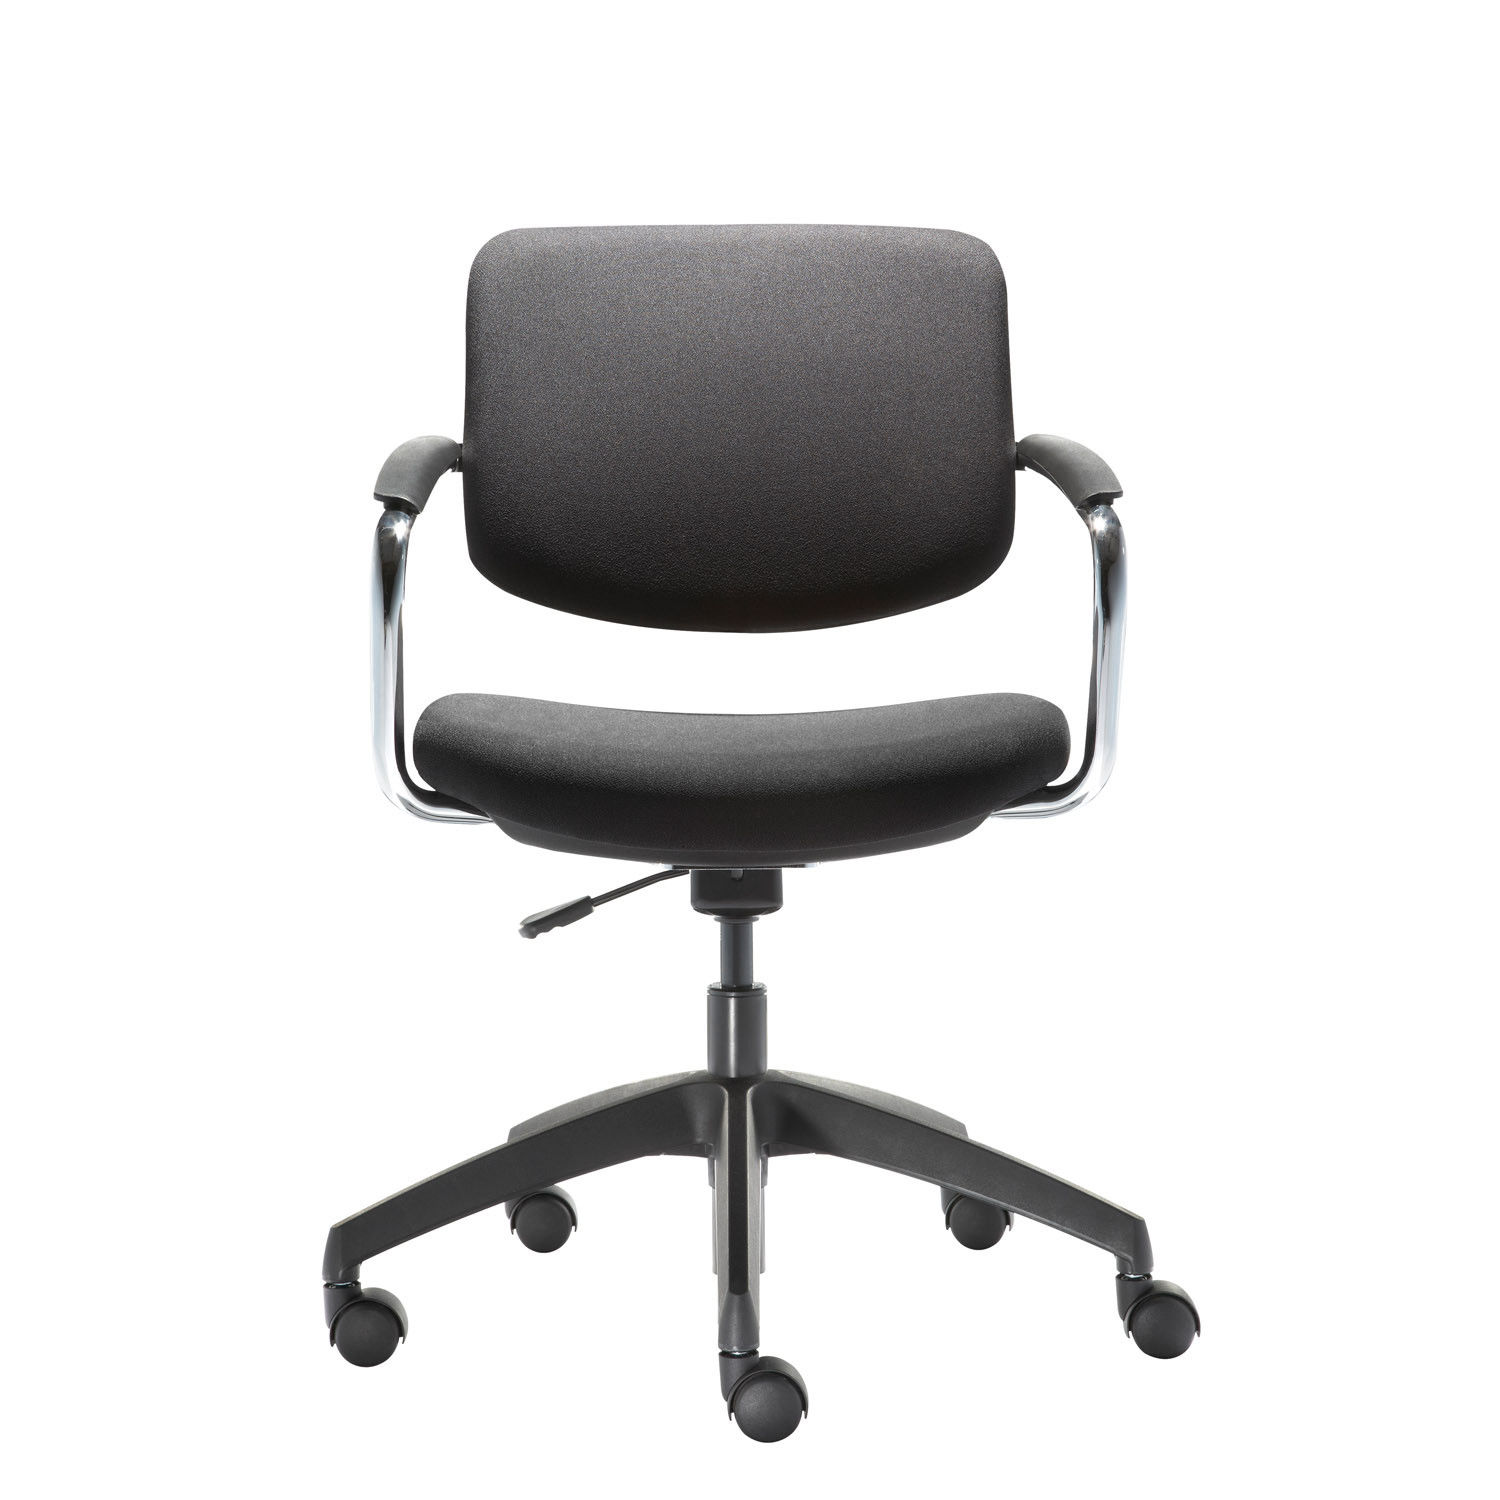 Connection My Meeting Swivel Chair